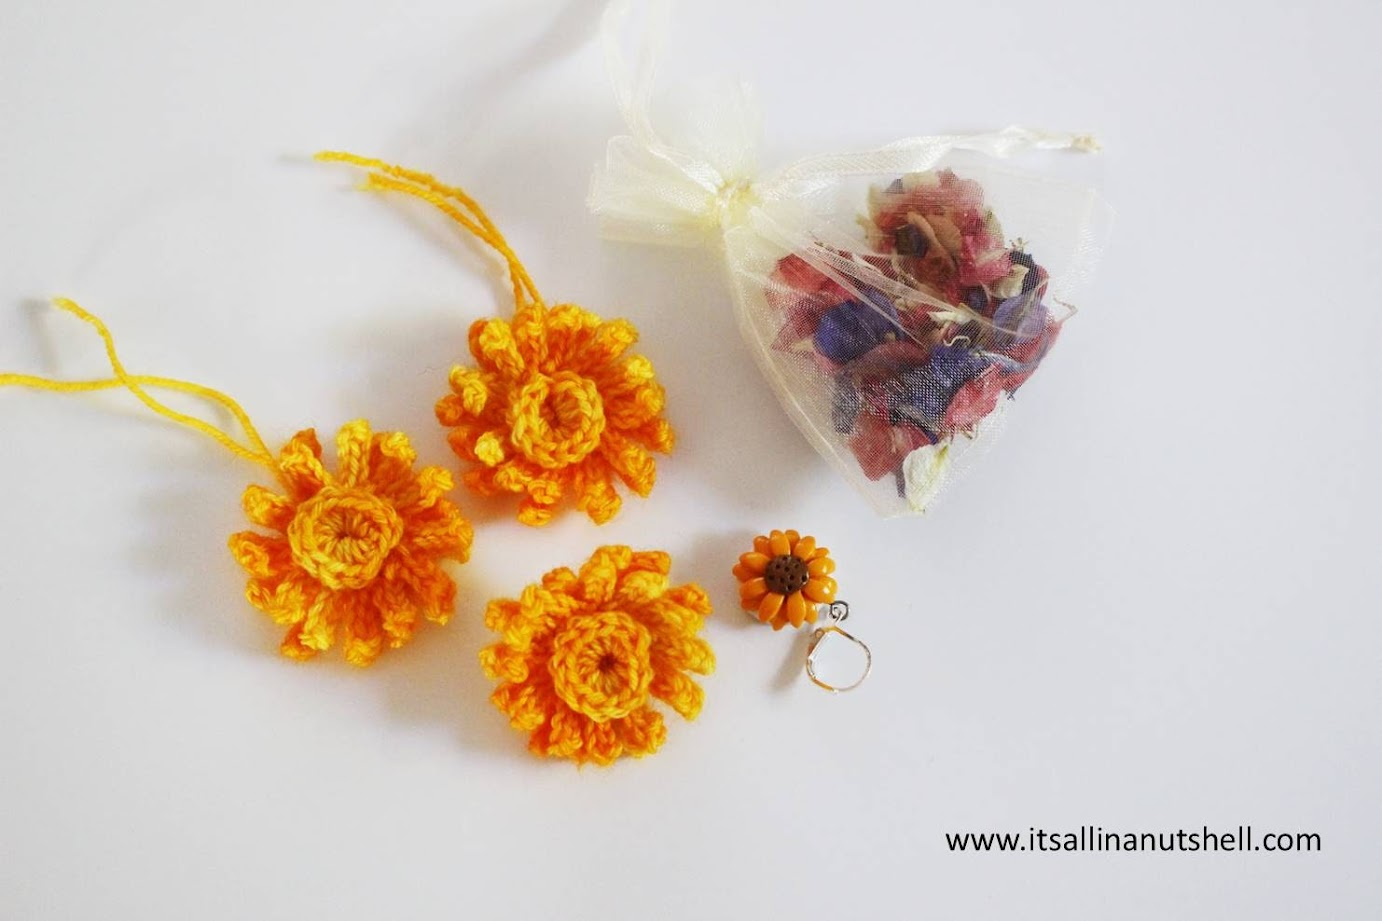 finished calendula flowers